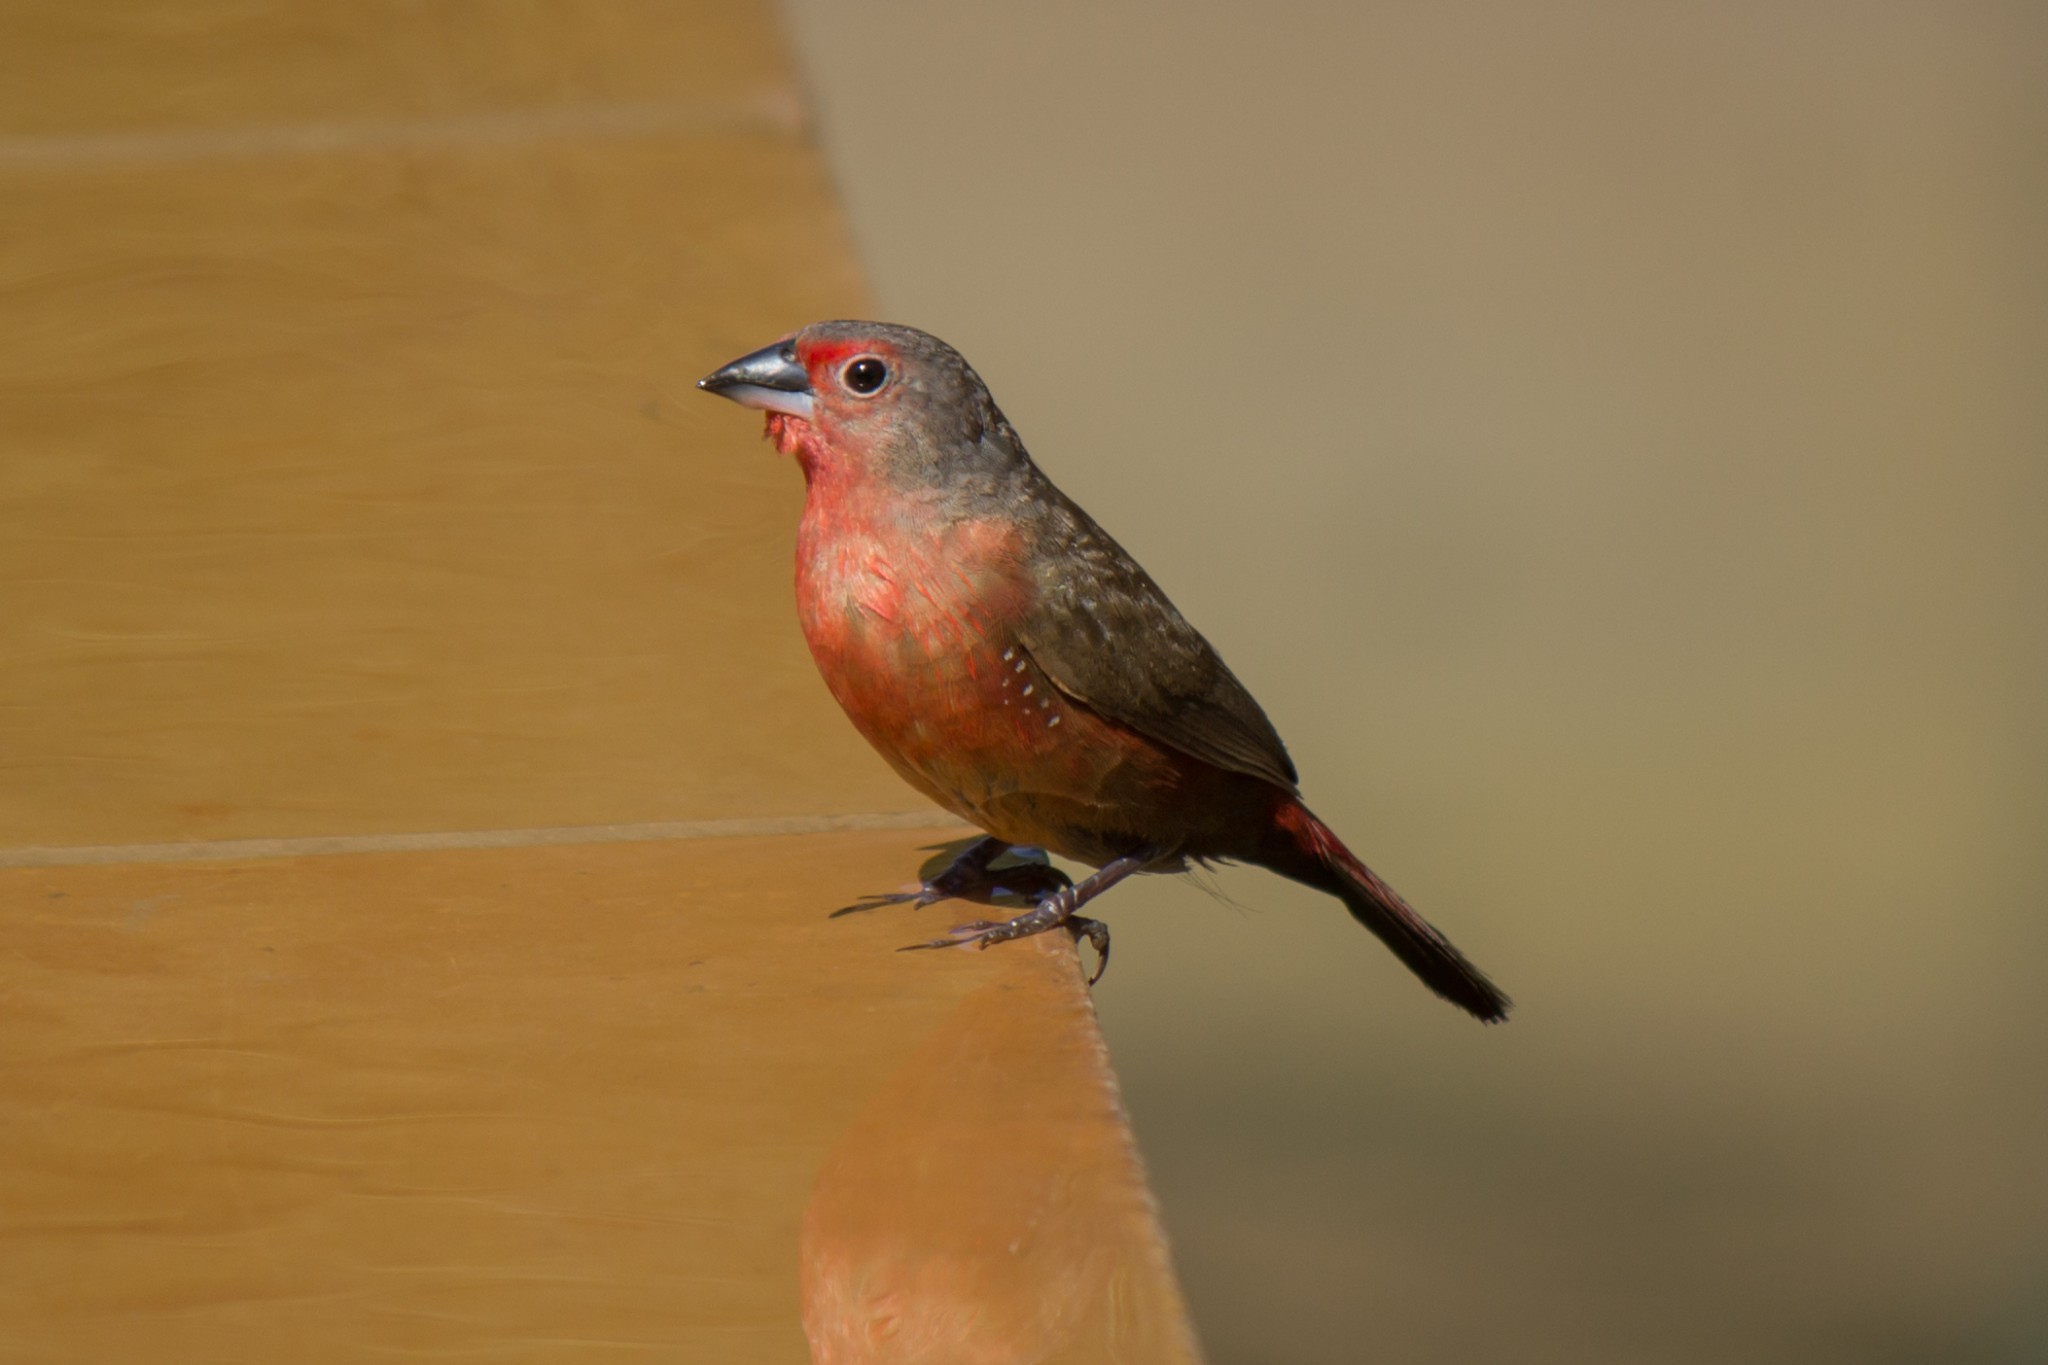 African Firefinch @ Thanda Private Game Reserve. Photo: Håvard Rosenlund